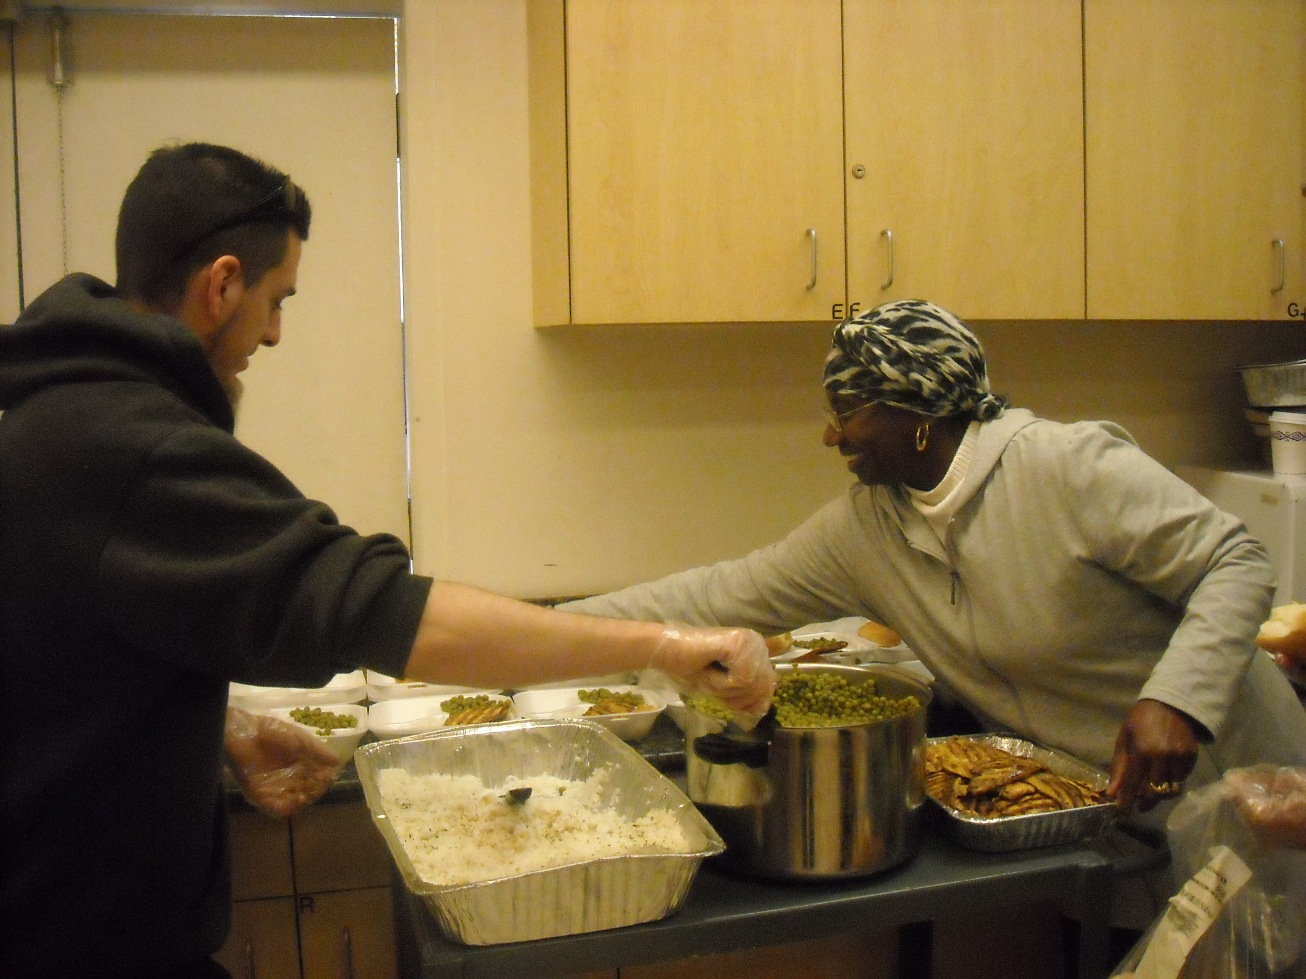 Lighthouse shares with the muslim community in preparing hot meals